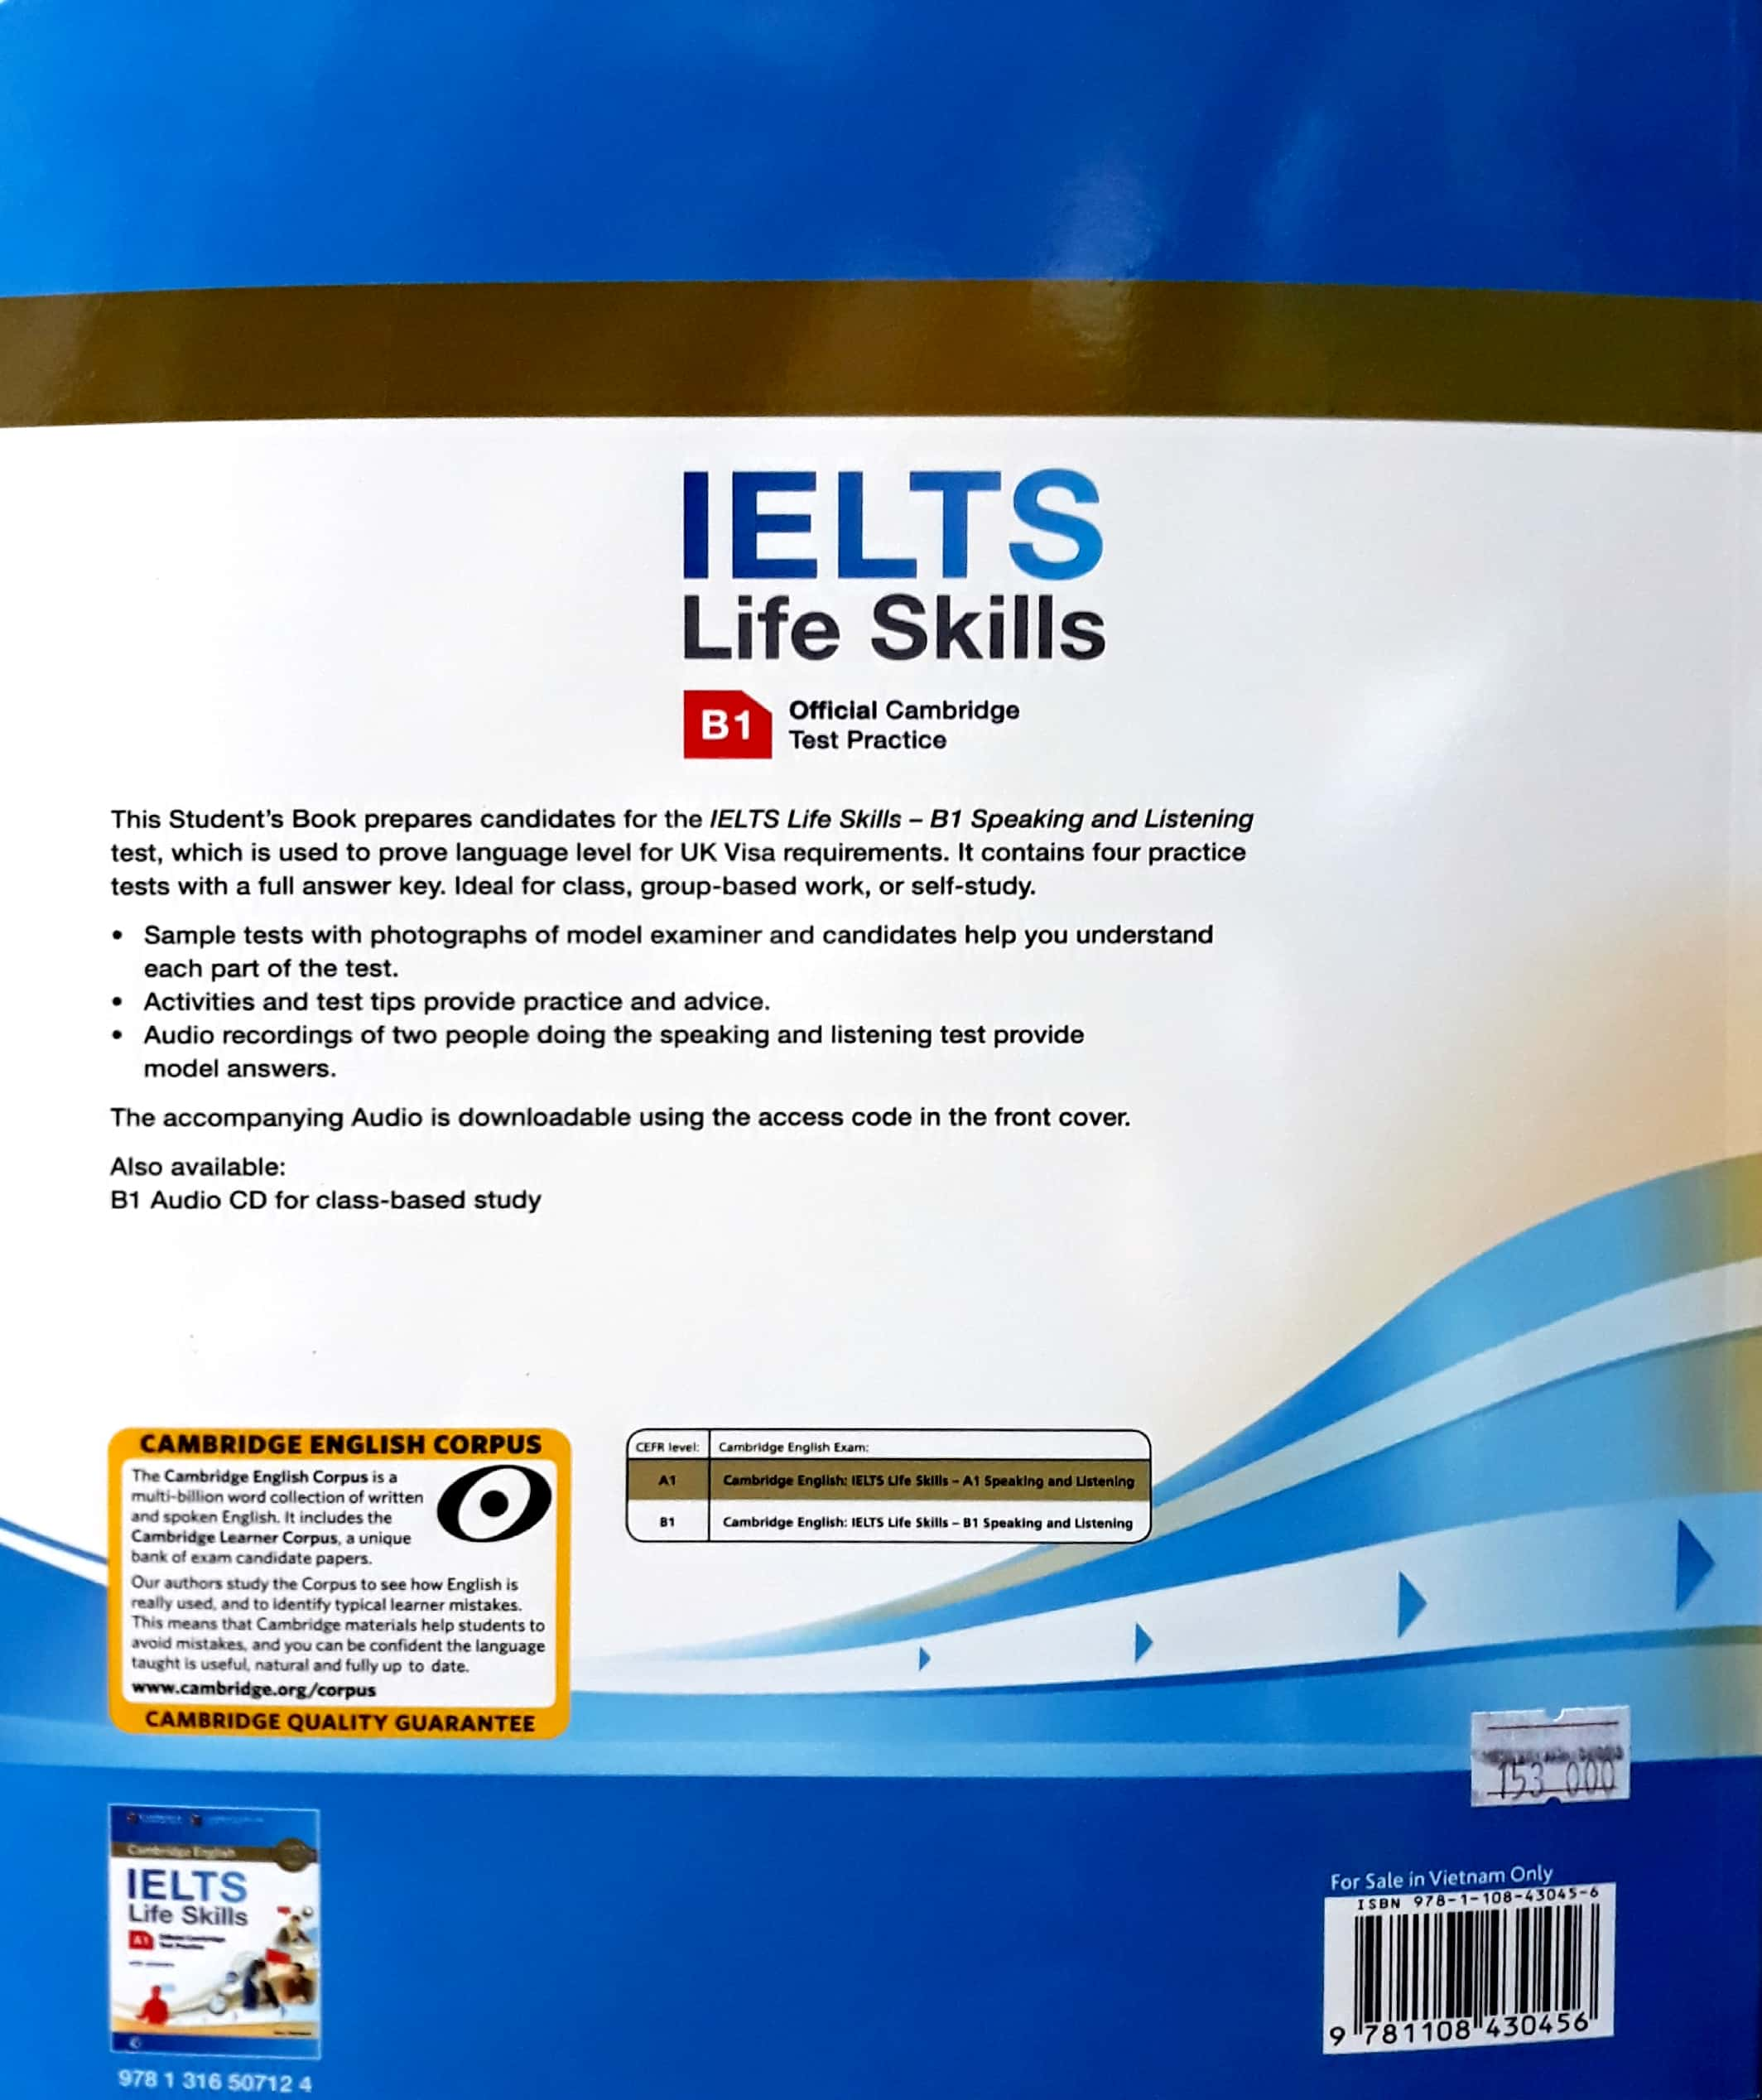 IELTS Life Skills Official Cambridge Test Practice B1 Student's Book with  Answers and Audio Fahasa Reprint Edition (Sách Không Kèm Đĩa) - IELTS Books